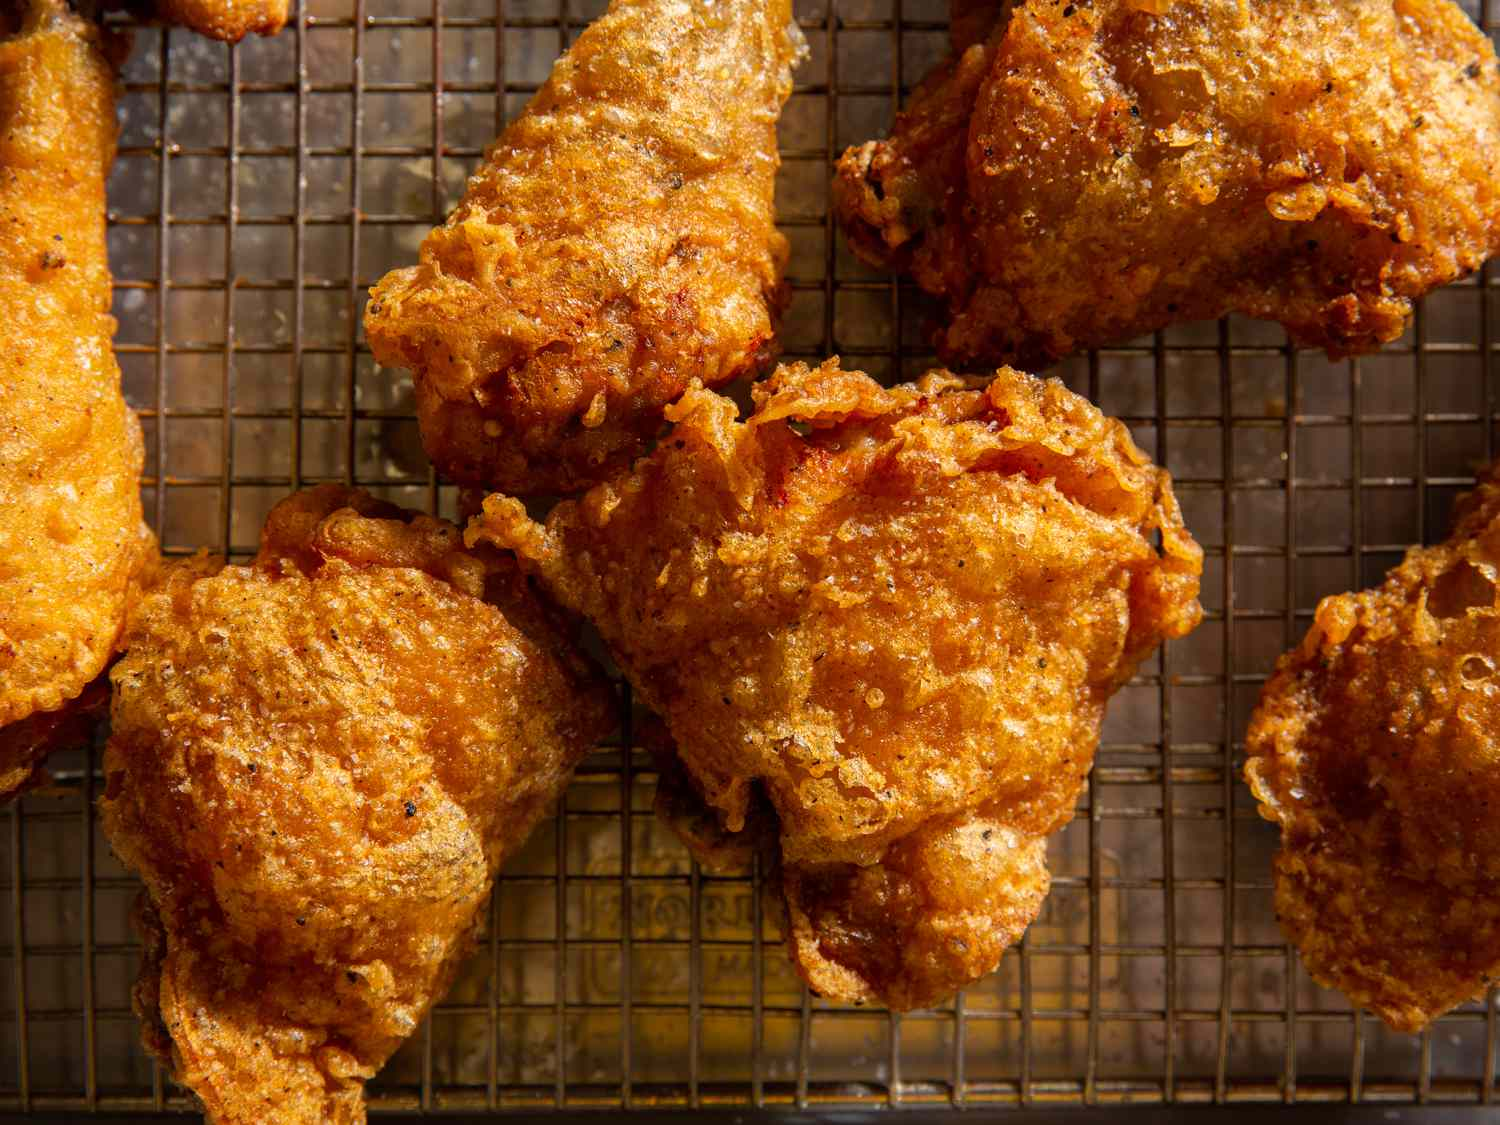 Batter-fried chicken pieces resting on a wire rack set in a rimmed baking sheet